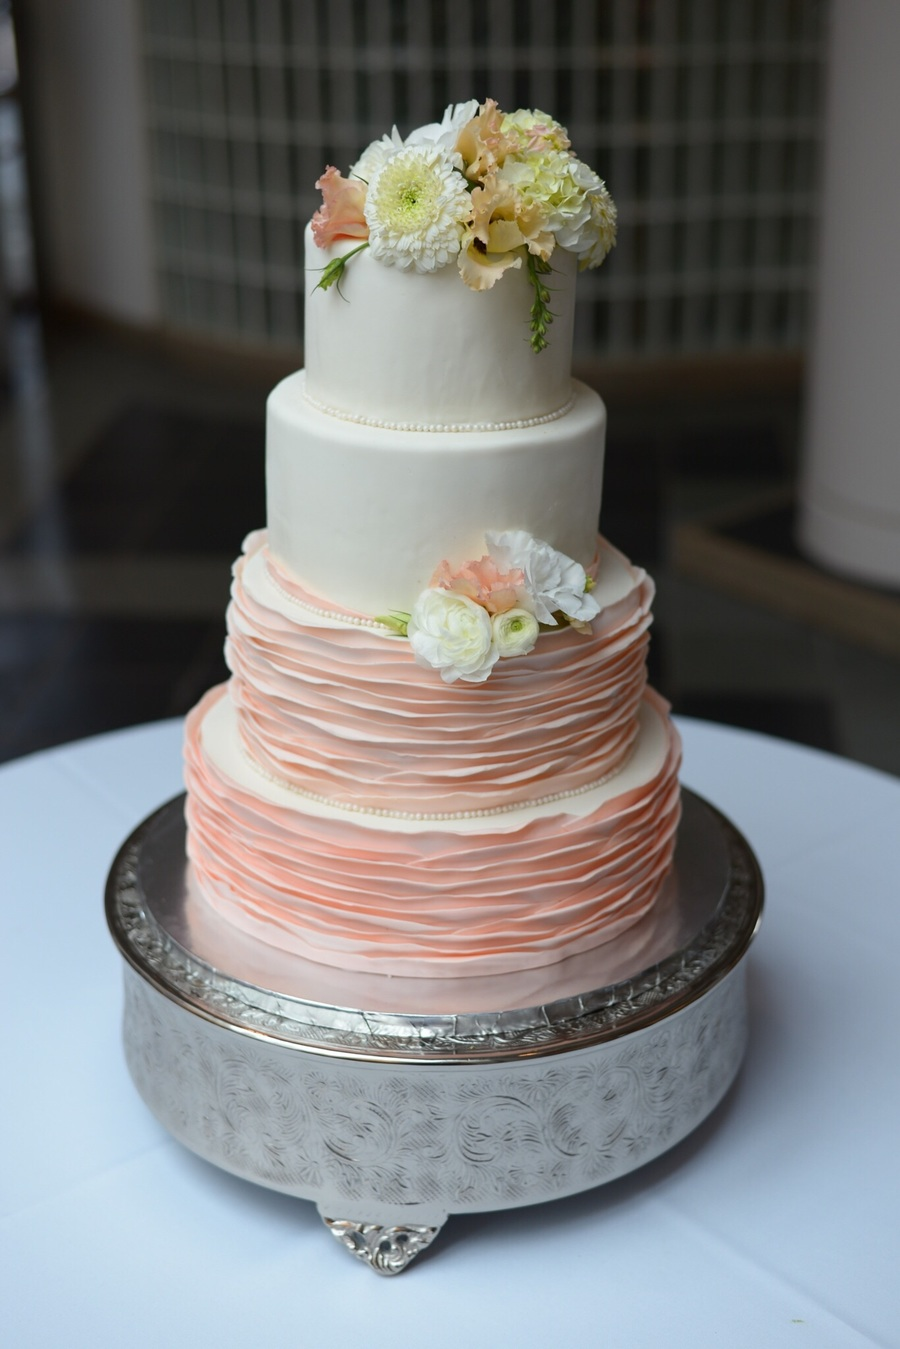 How To Save Top Tier Of Wedding Cake